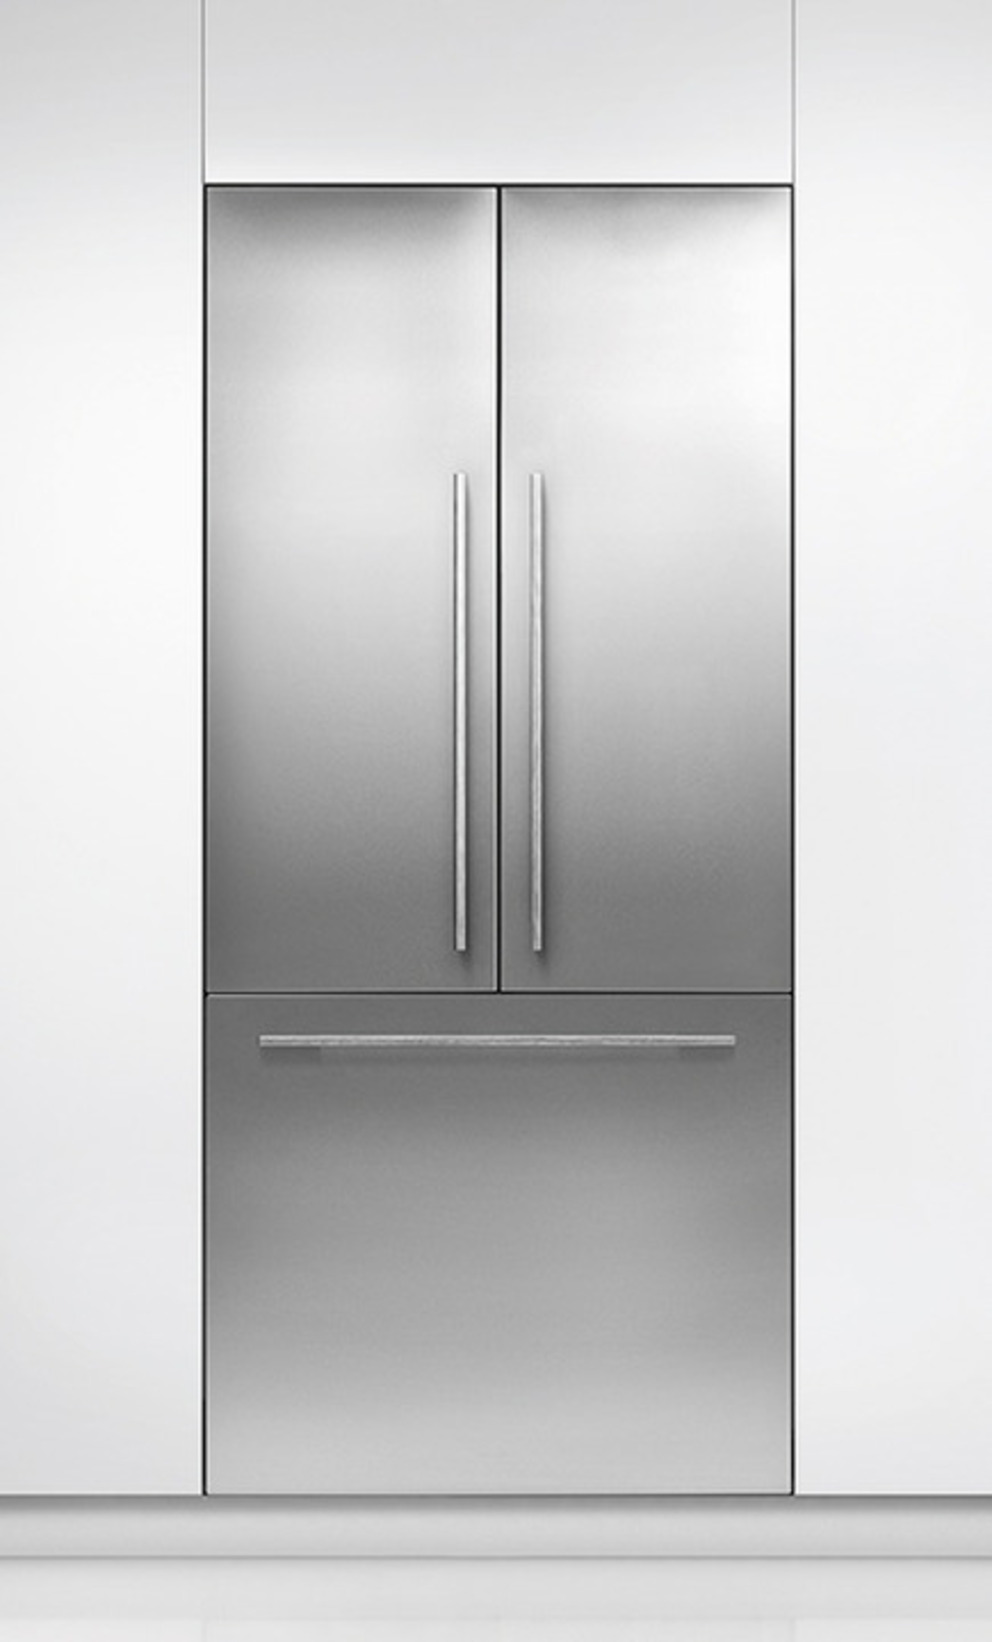 Fridges Fisher&Paykel RS36A80J1 + RD3680 (80'' F&P)